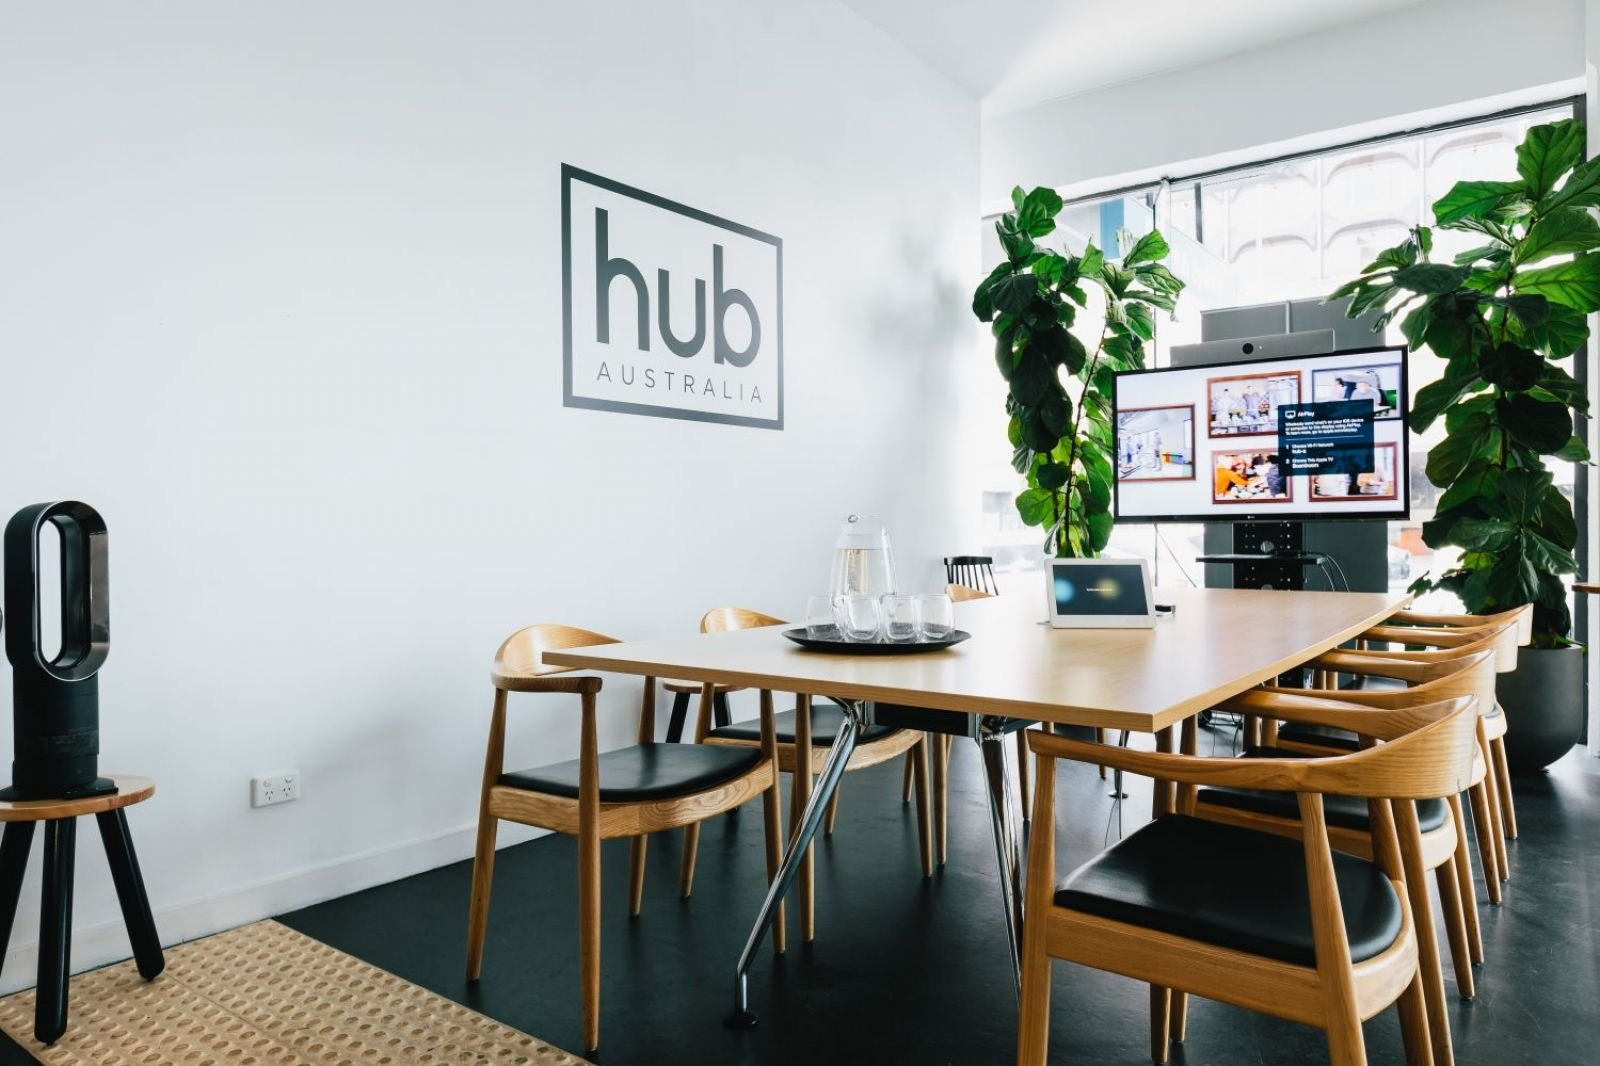 Hub William Street / Australia / Sydney